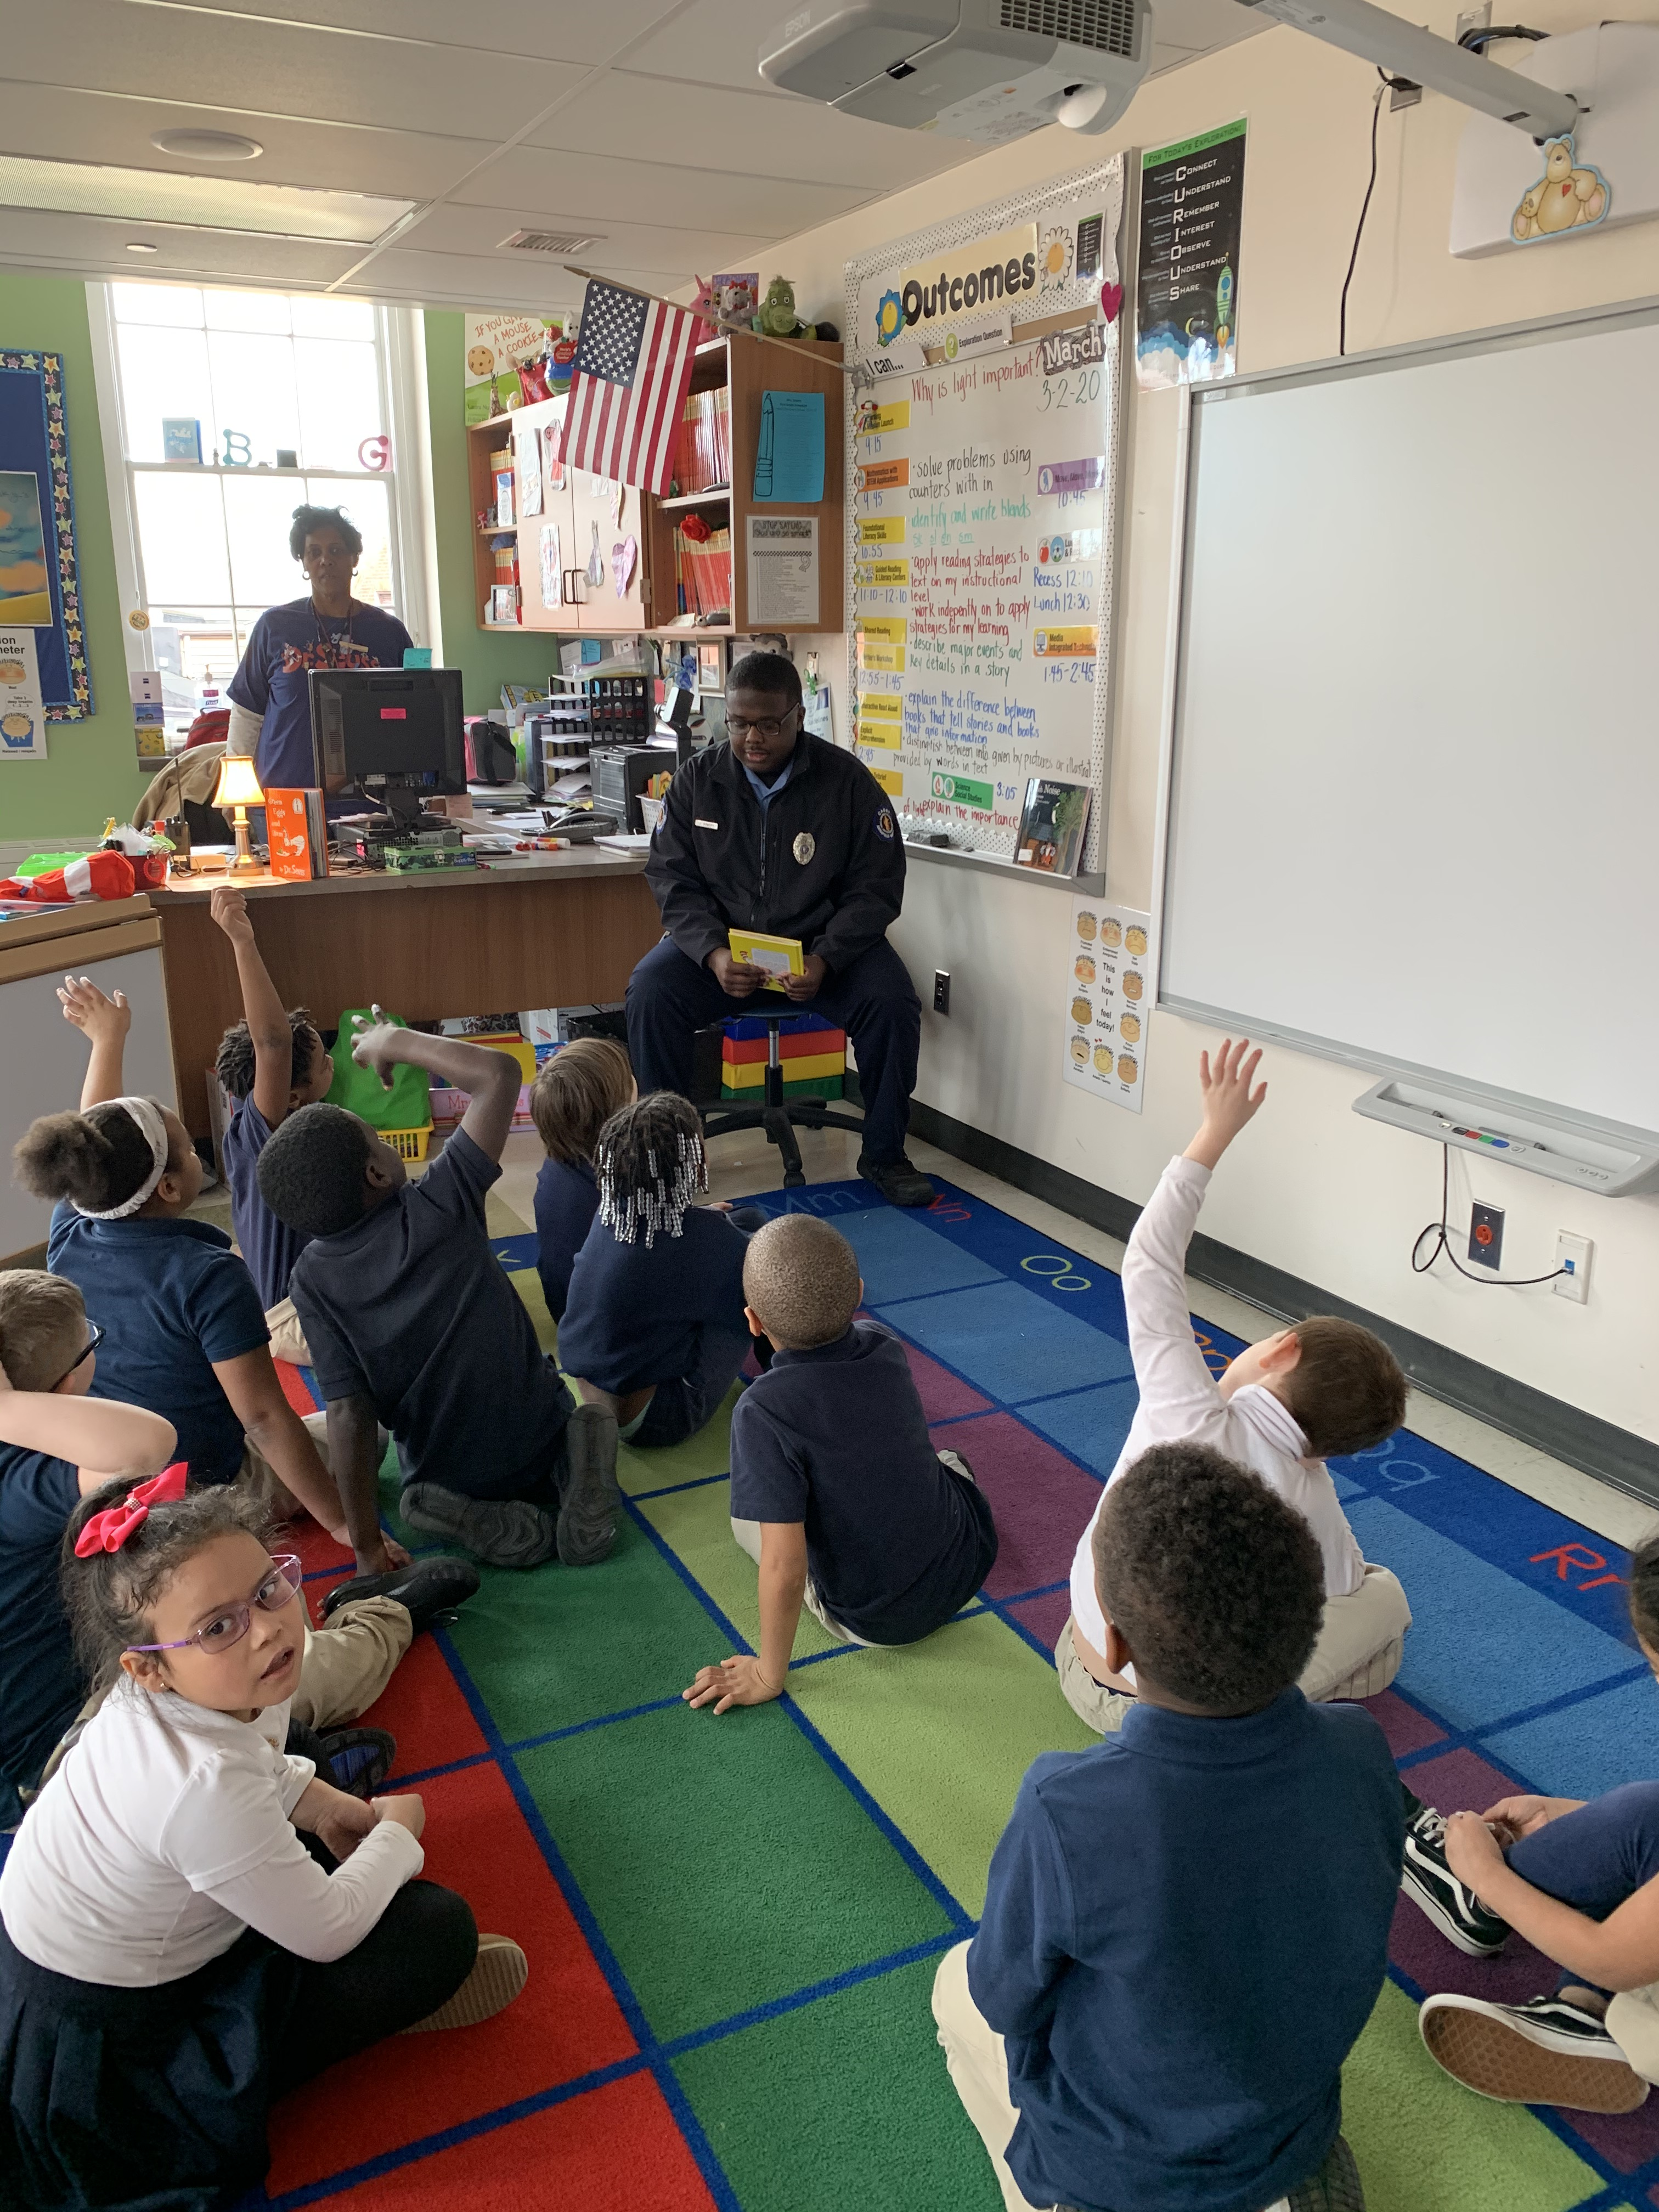 Cadet reading to a classroom full of children.